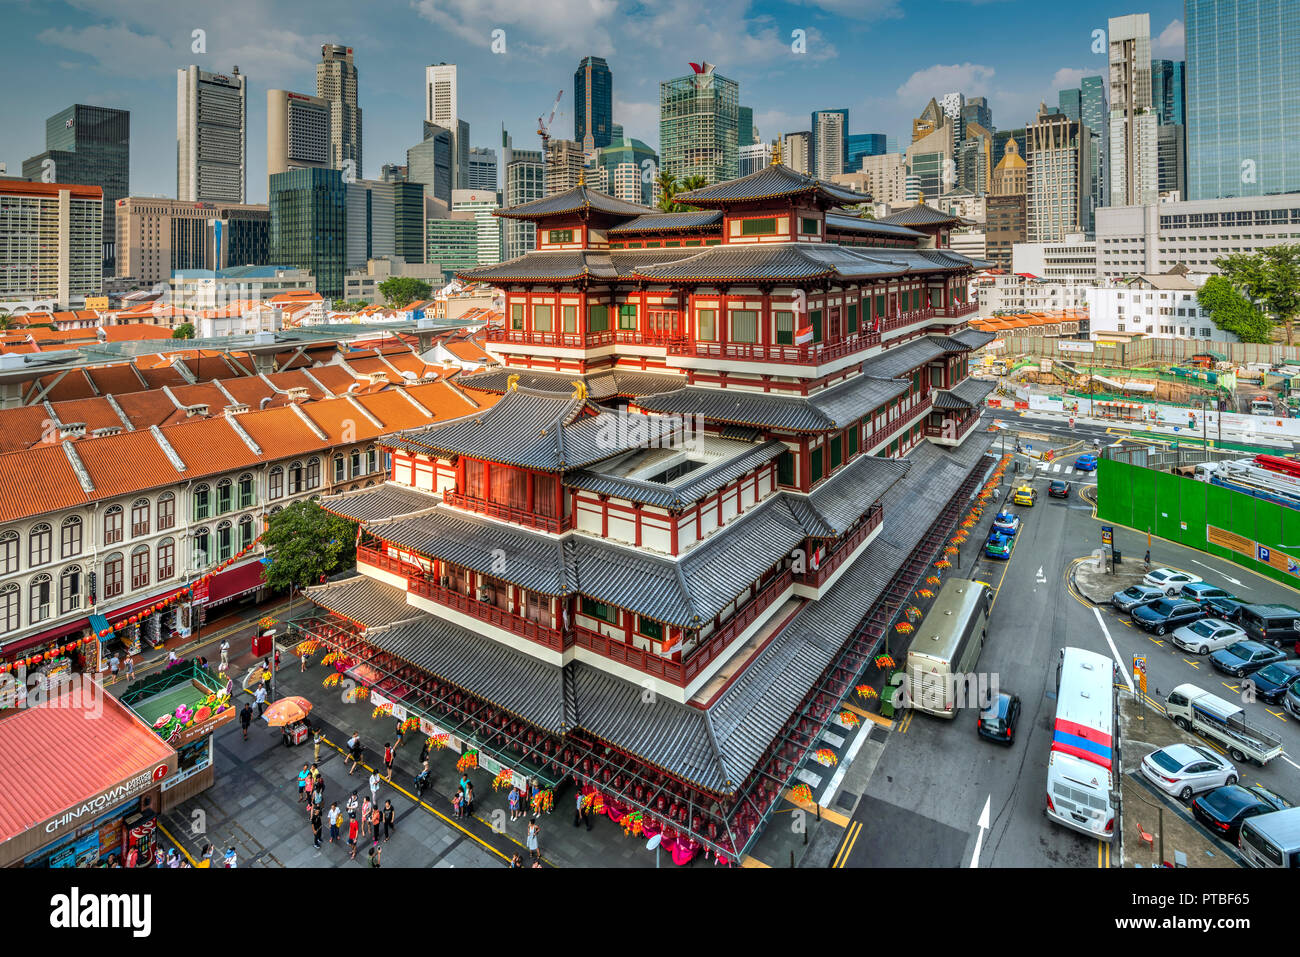 Buddha Tooth Relic Temple and city skyline, Singapore - Stock Image